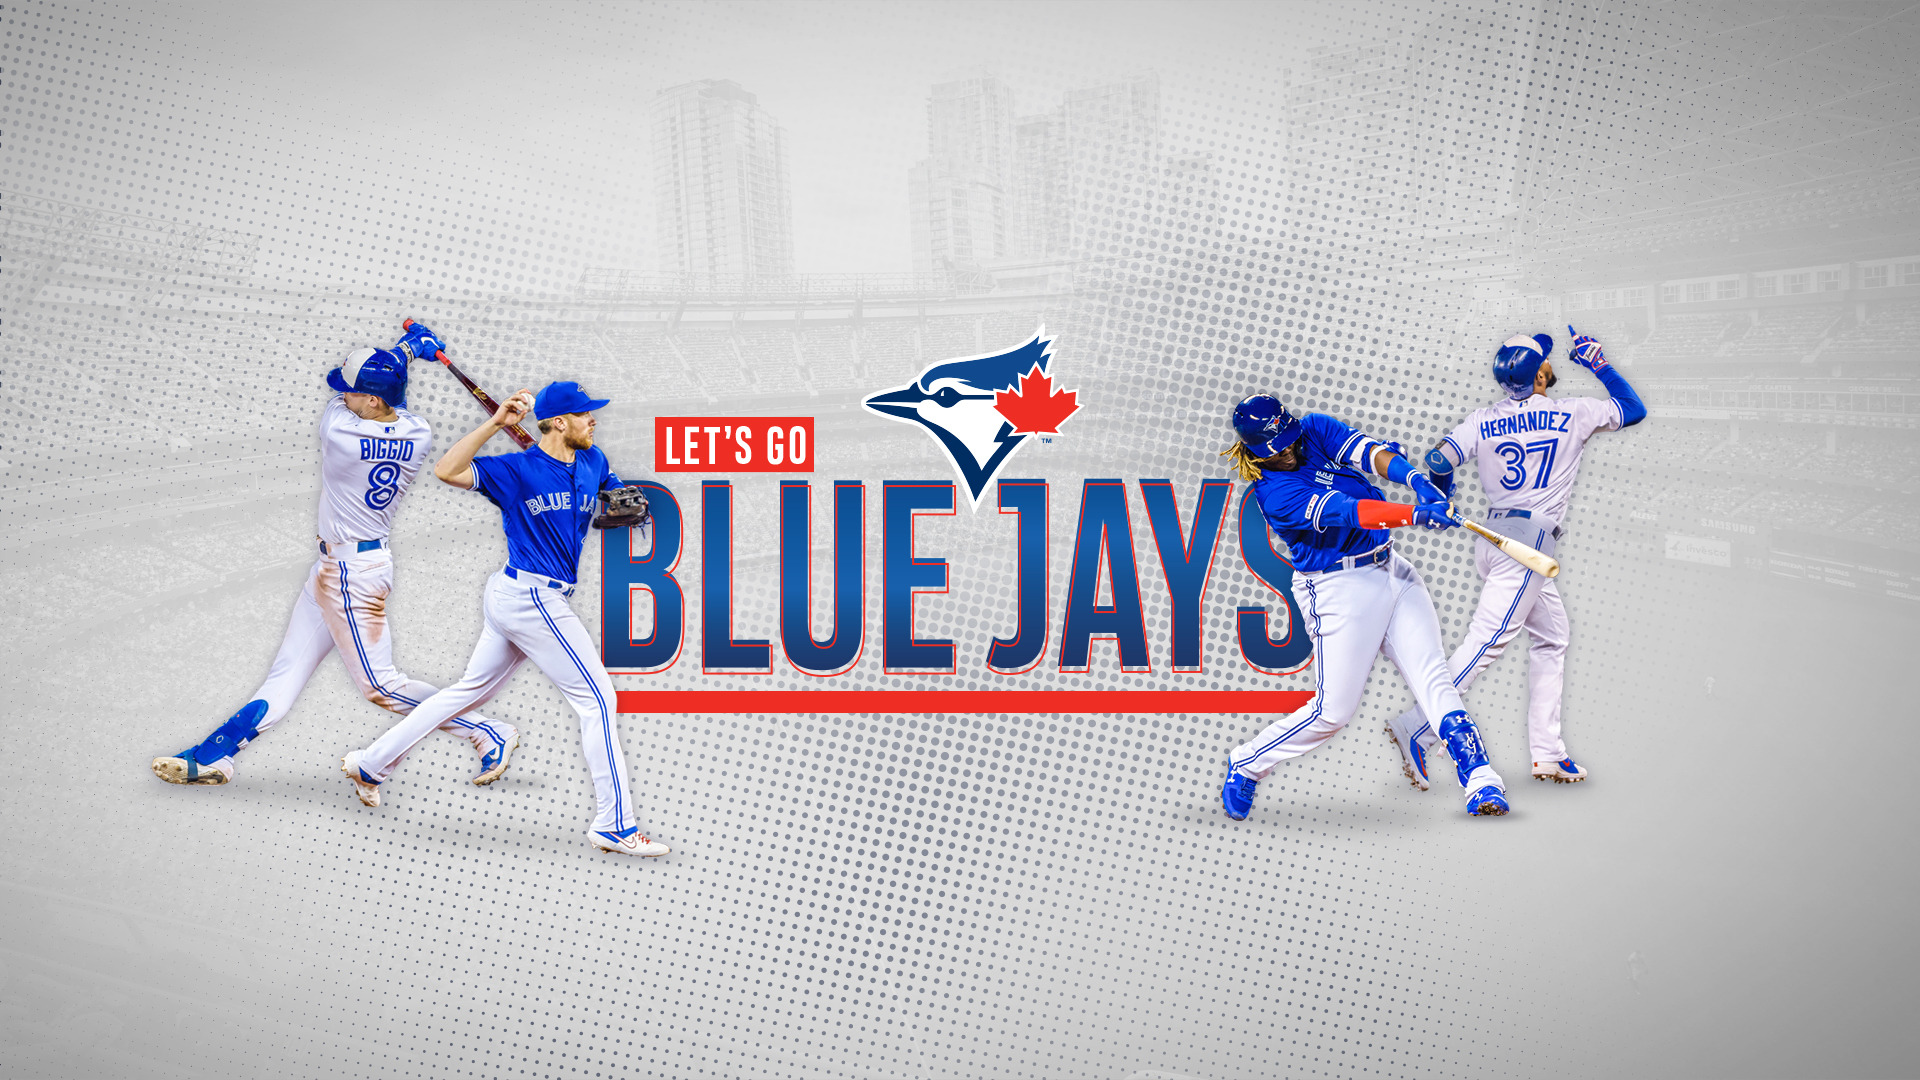 Wallpapers And Covers Toronto Blue Jays